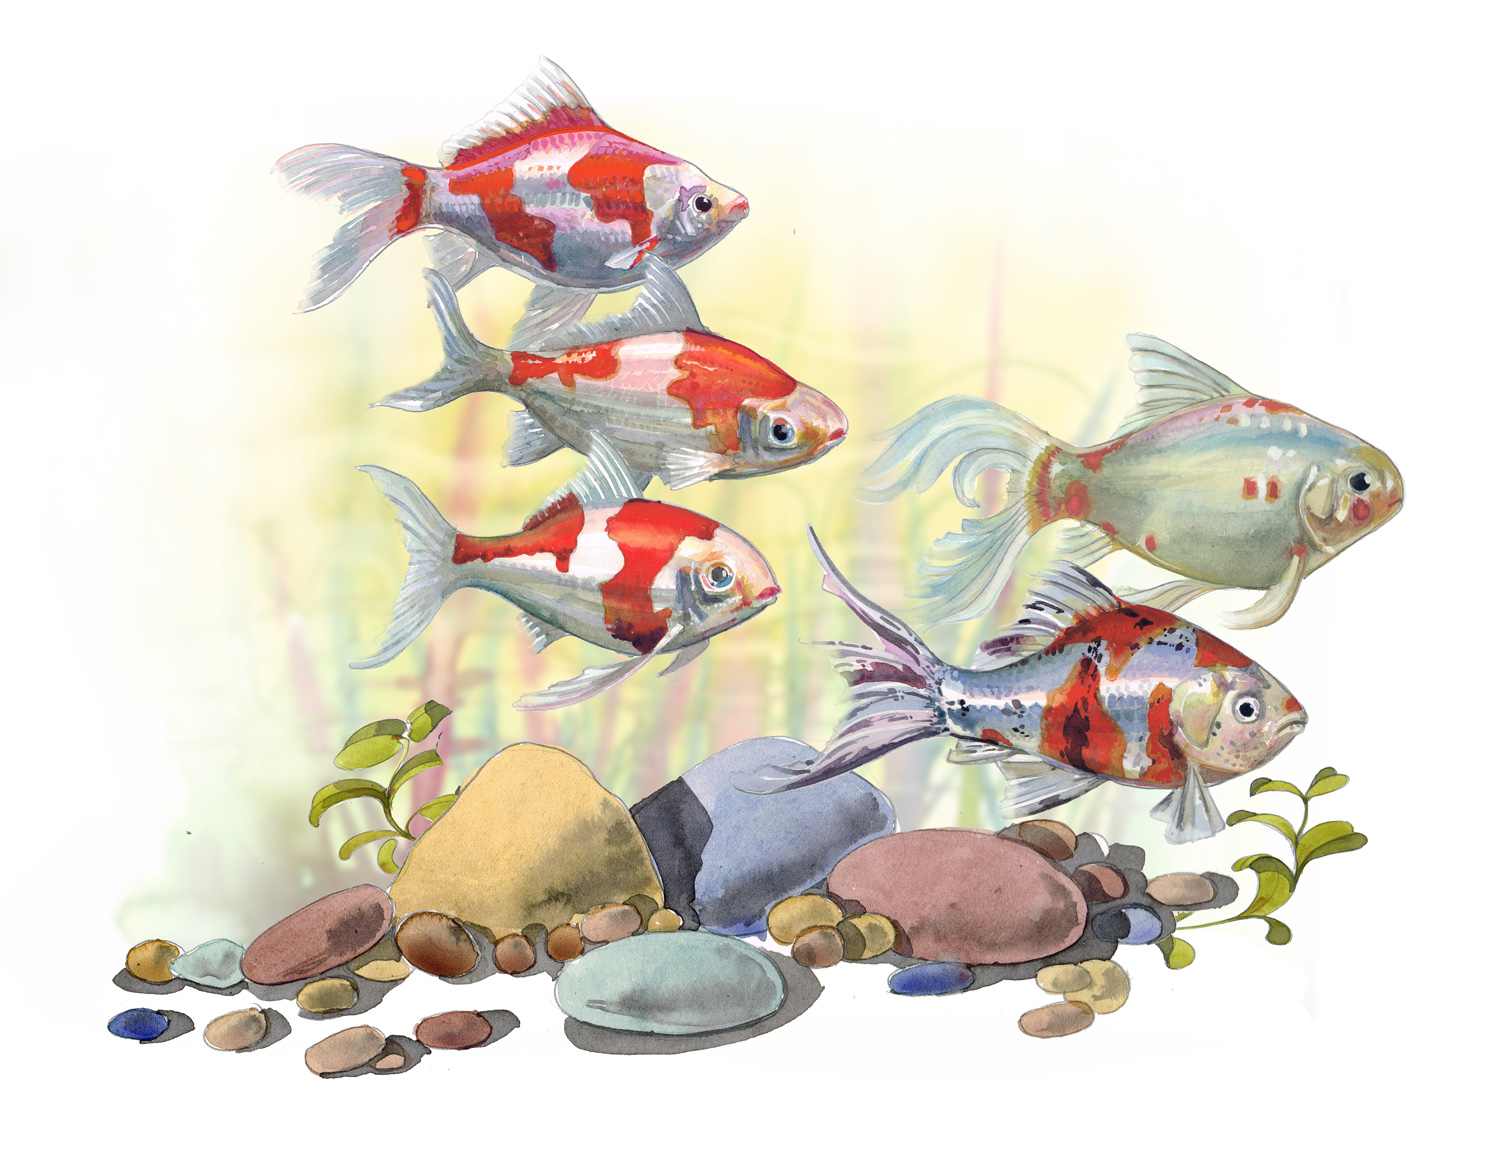 A painting of Coldwater fish